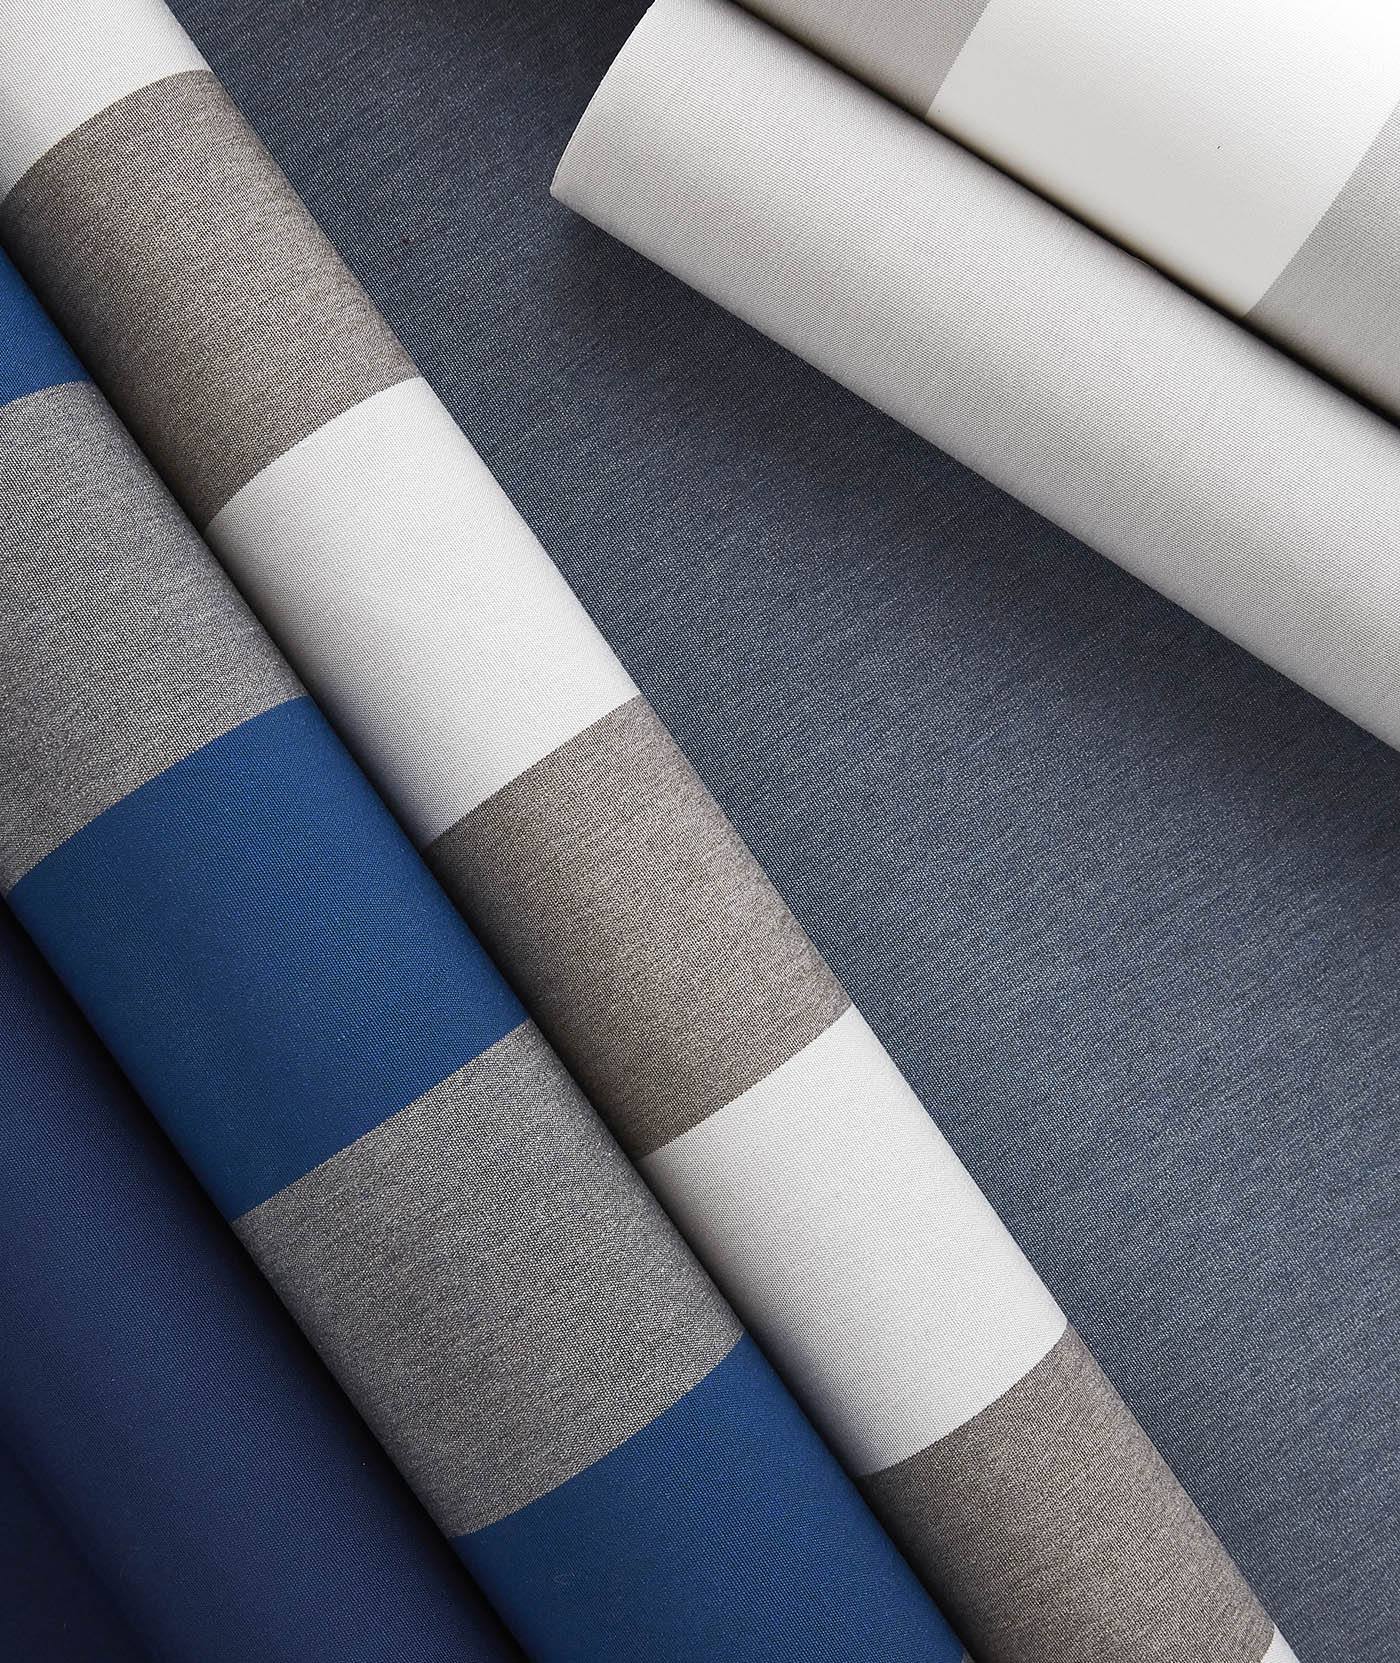 Sunbrella shade fabrics featuring new Beaufort stripes